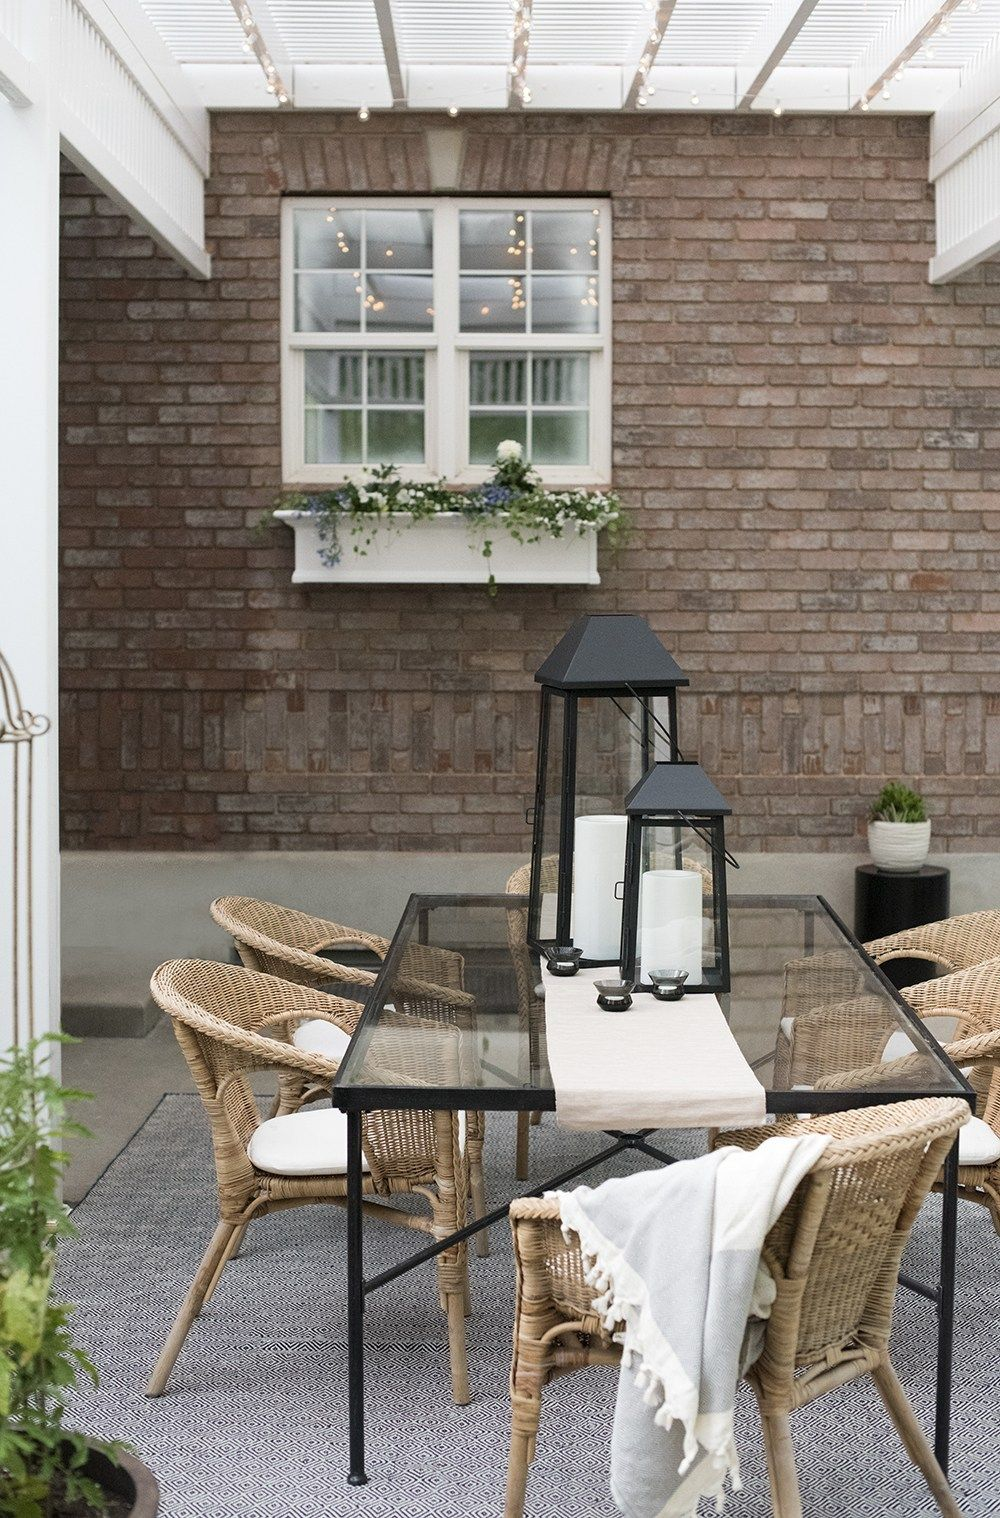 Our Patio & Outdoor Living Space   Outdoor living, Outdoor ... on Living Spaces Outdoor Dining id=45356